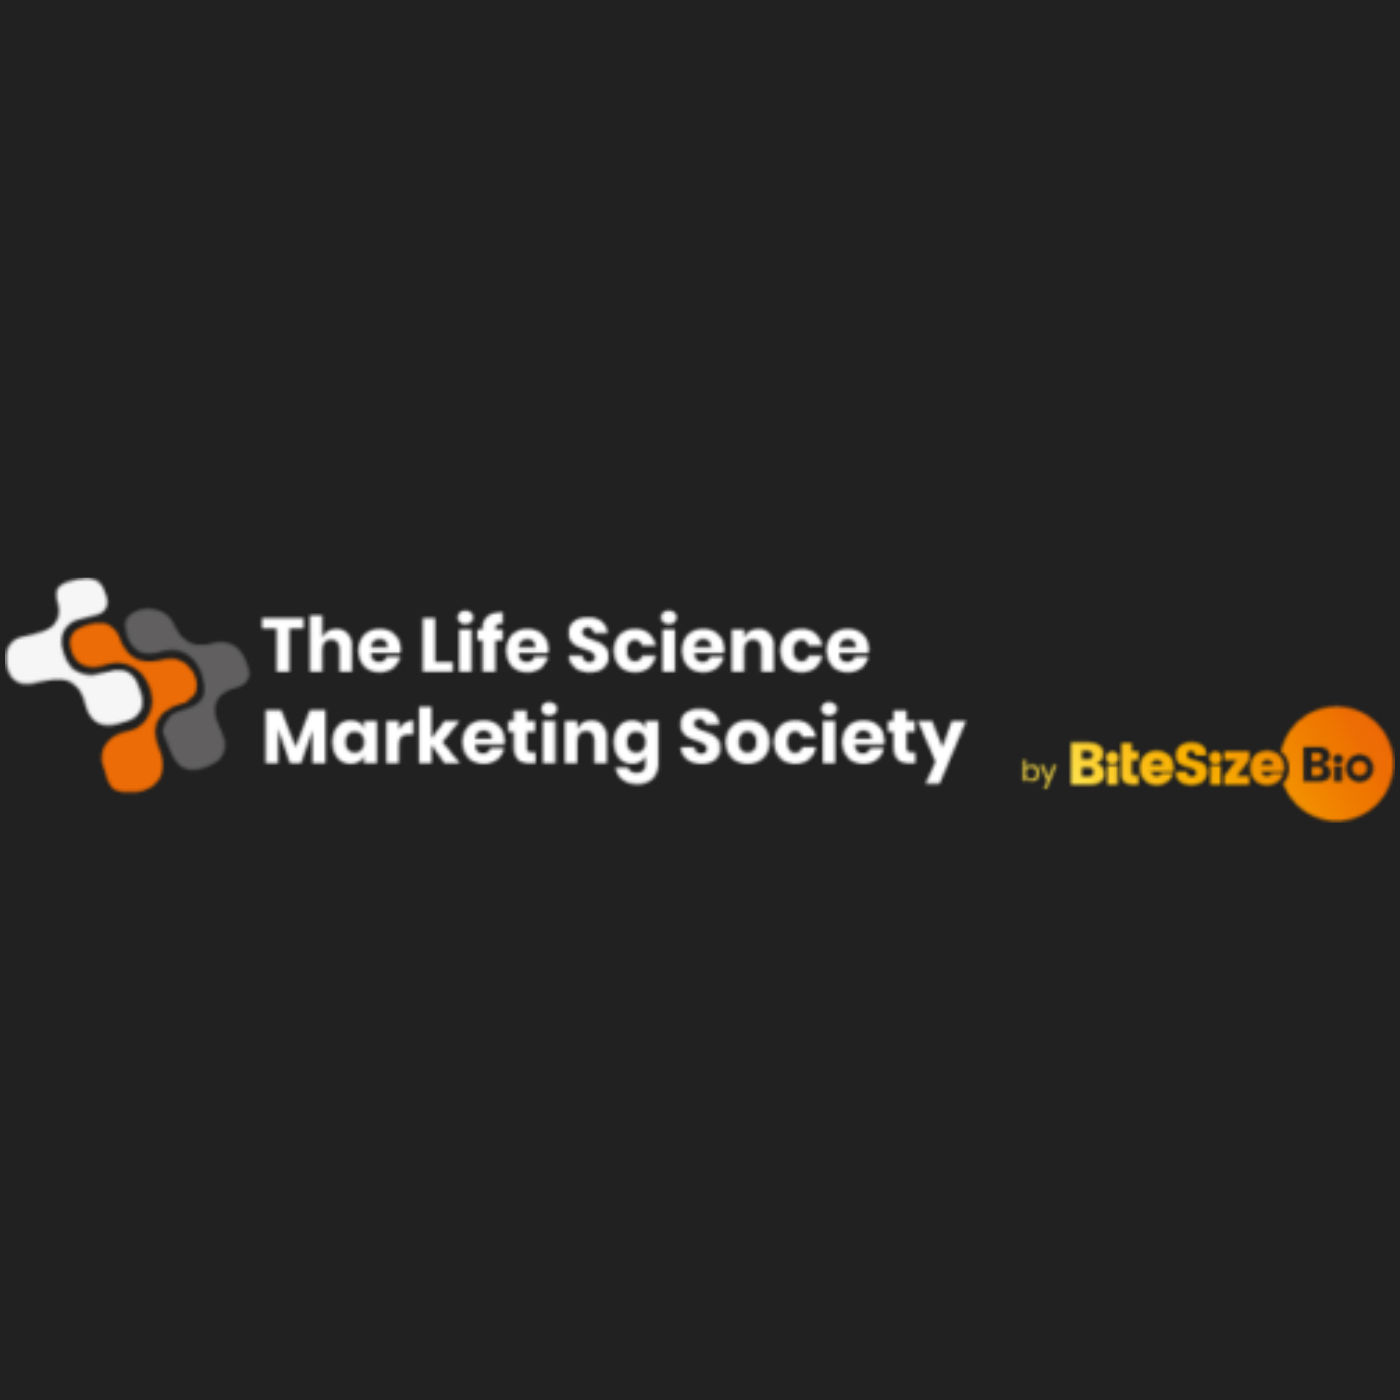 Life Science Marketing Society